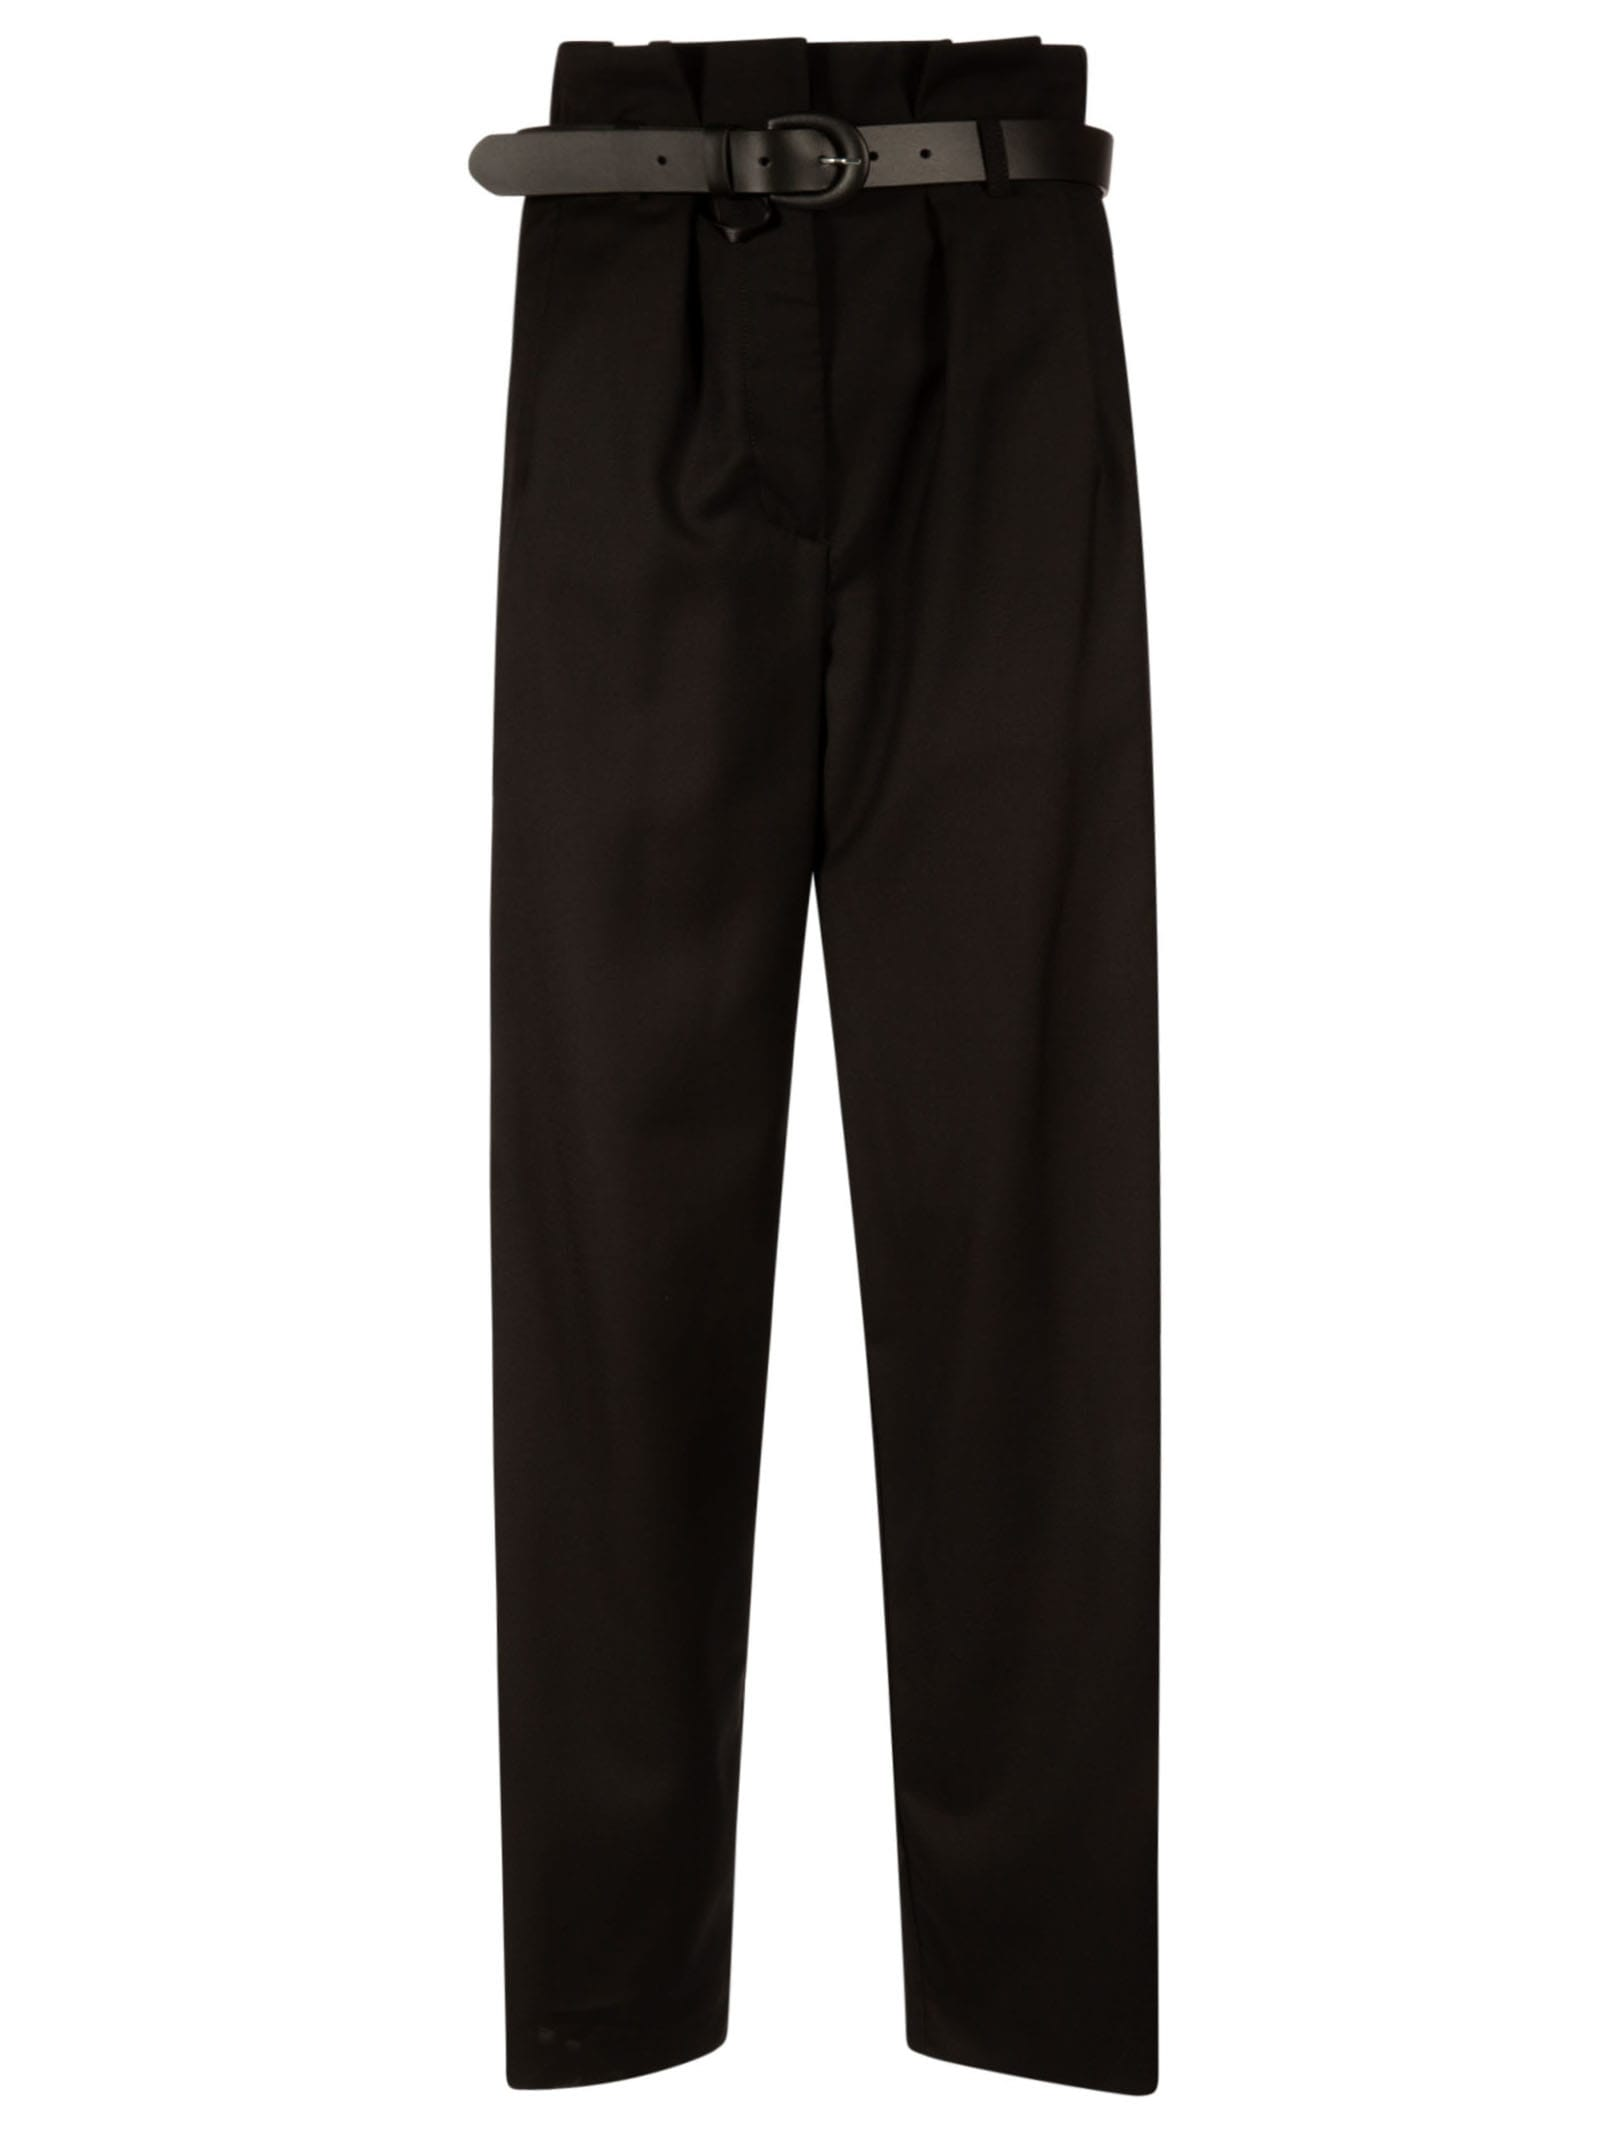 Celia Long Length Belted Trousers